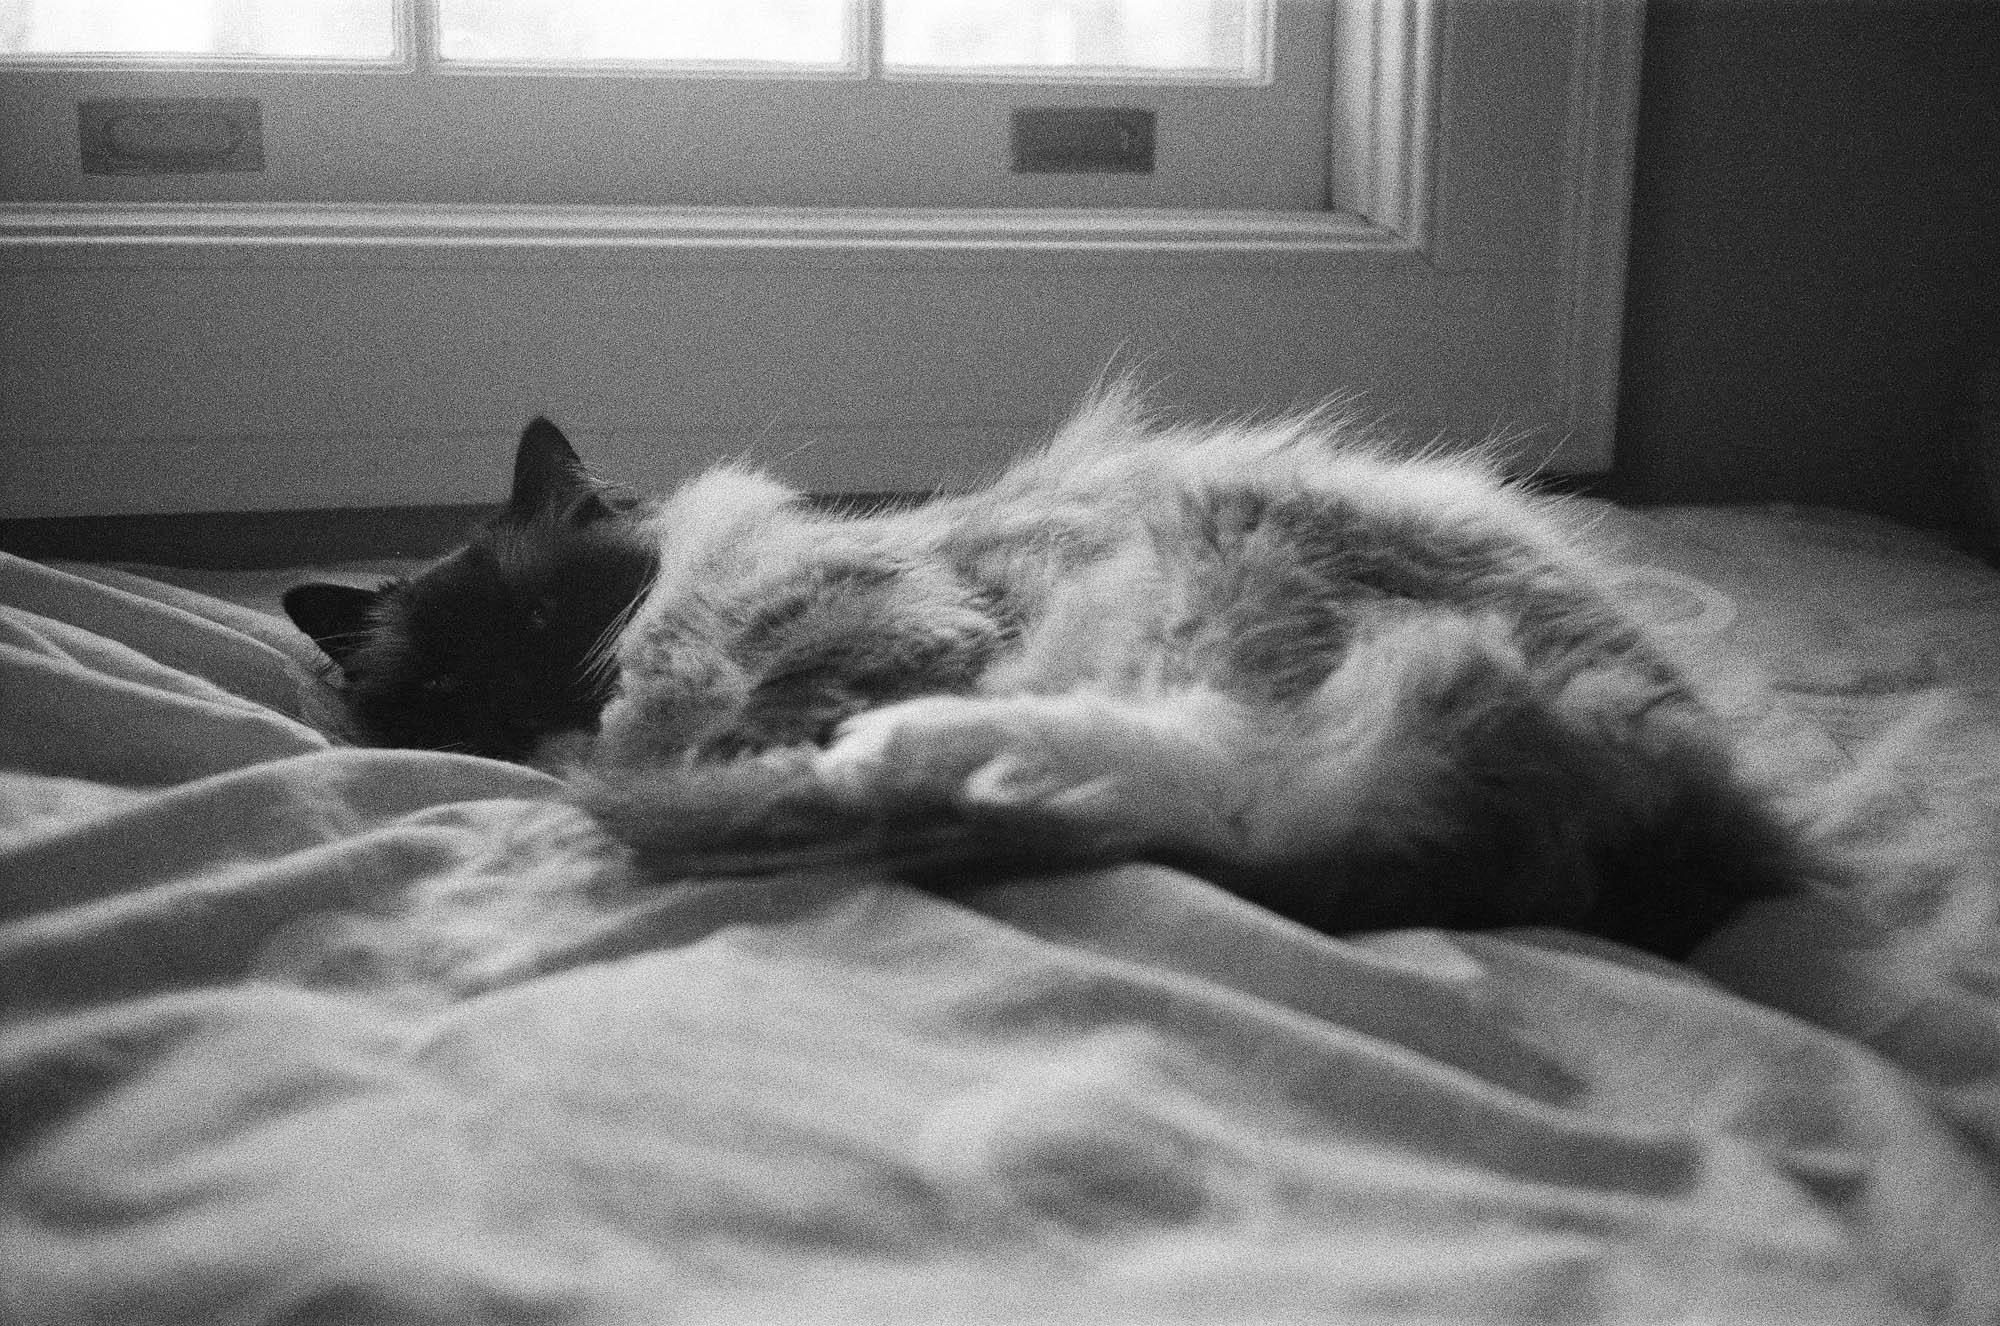 Cat nap by the window- Rollei 35 camera